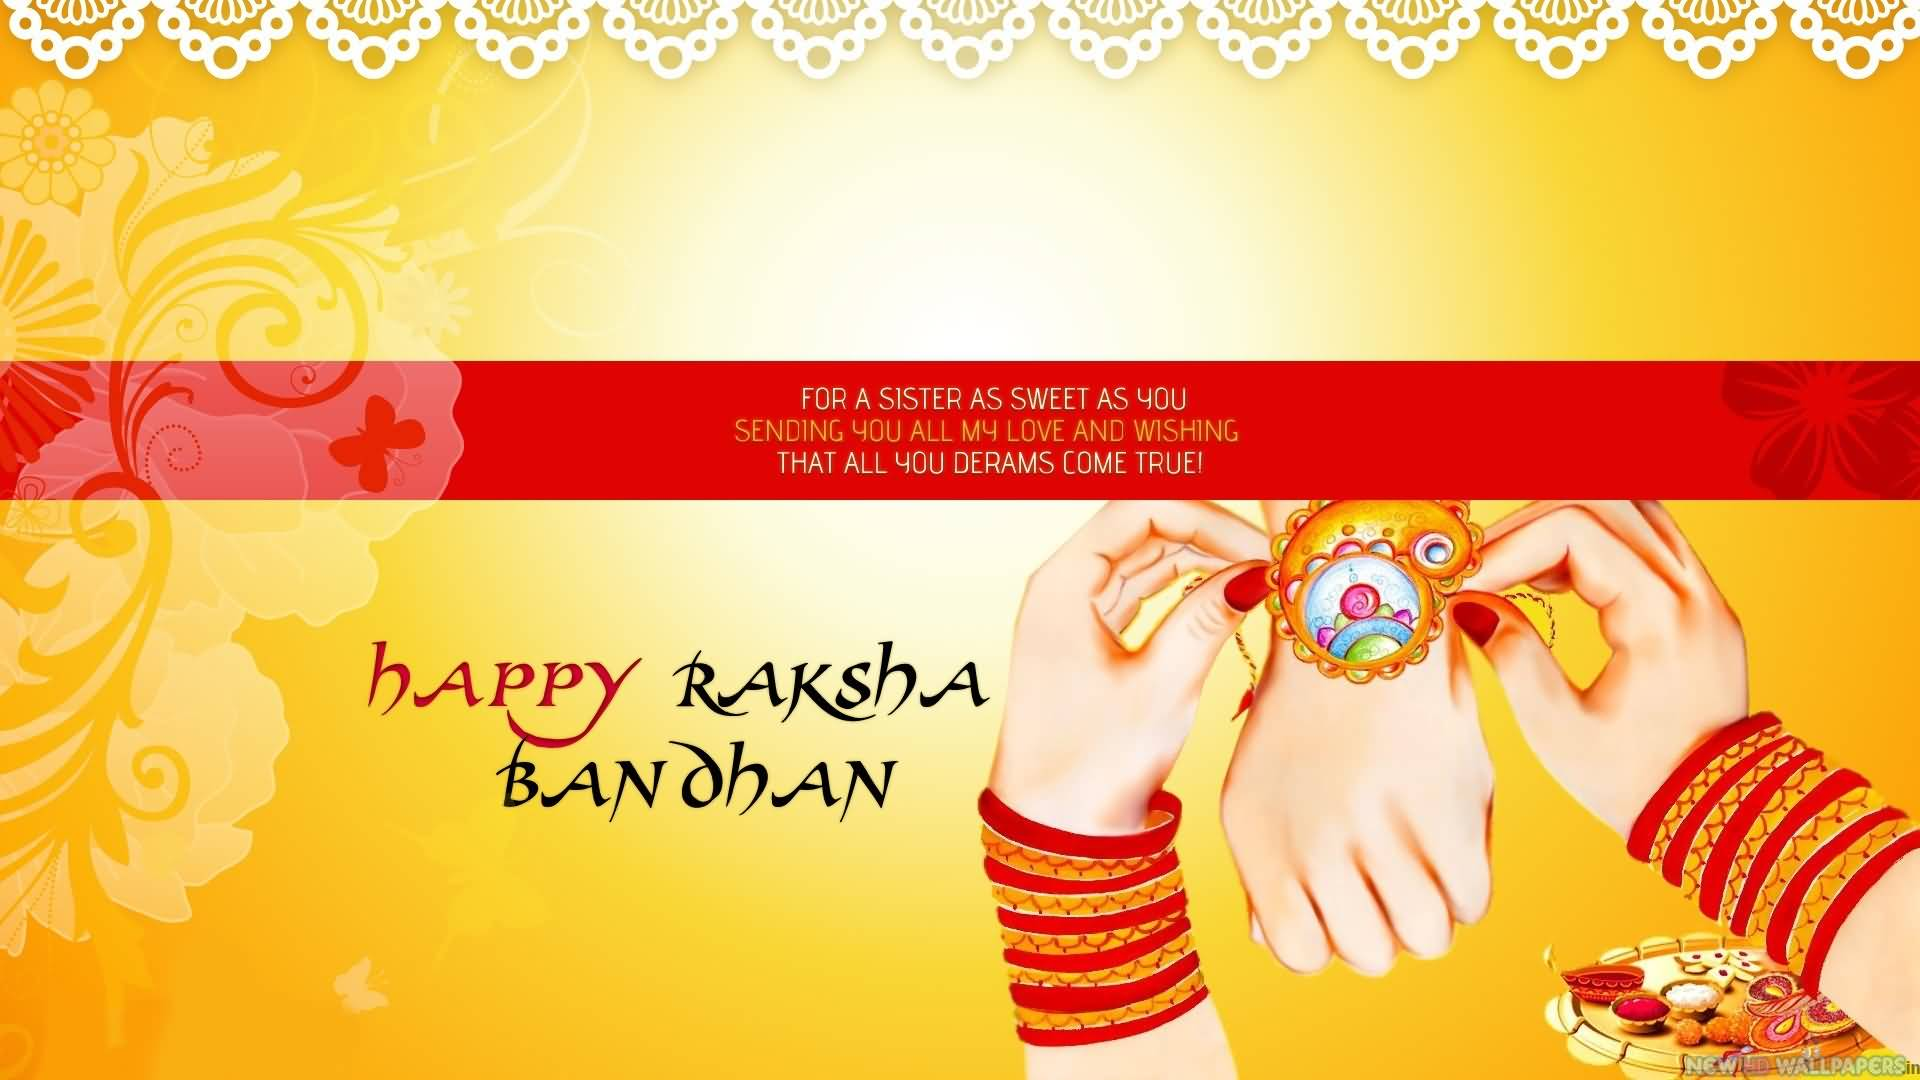 50 Best Happy Raksha Bandhan 2017 Images And Photos